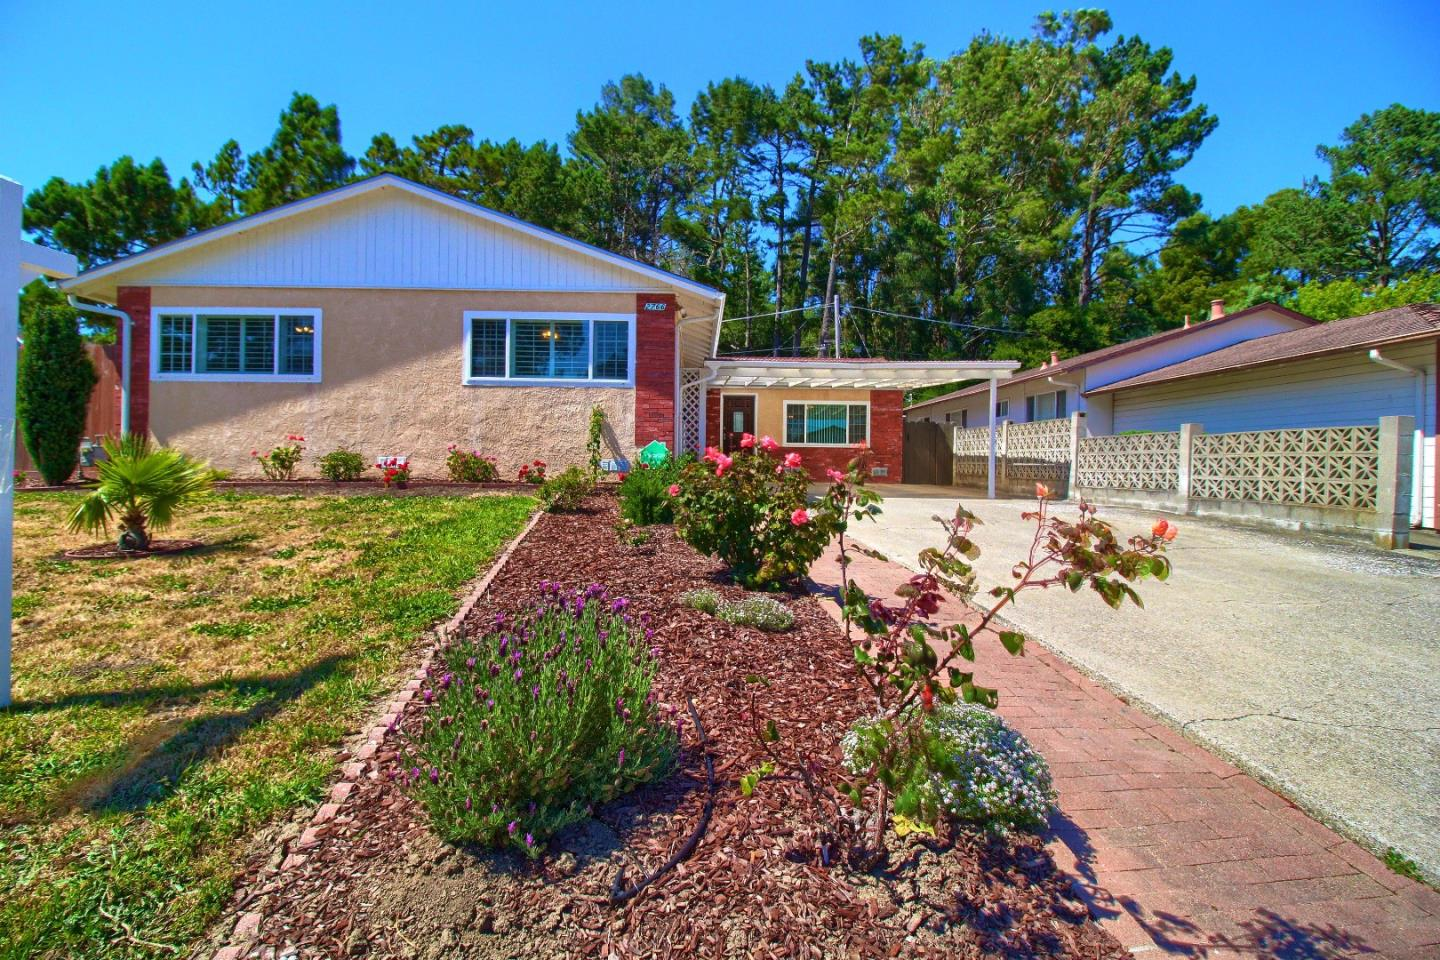 Single Family Home for Sale at 2766 Fleetwood Drive San Bruno, California 94066 United States